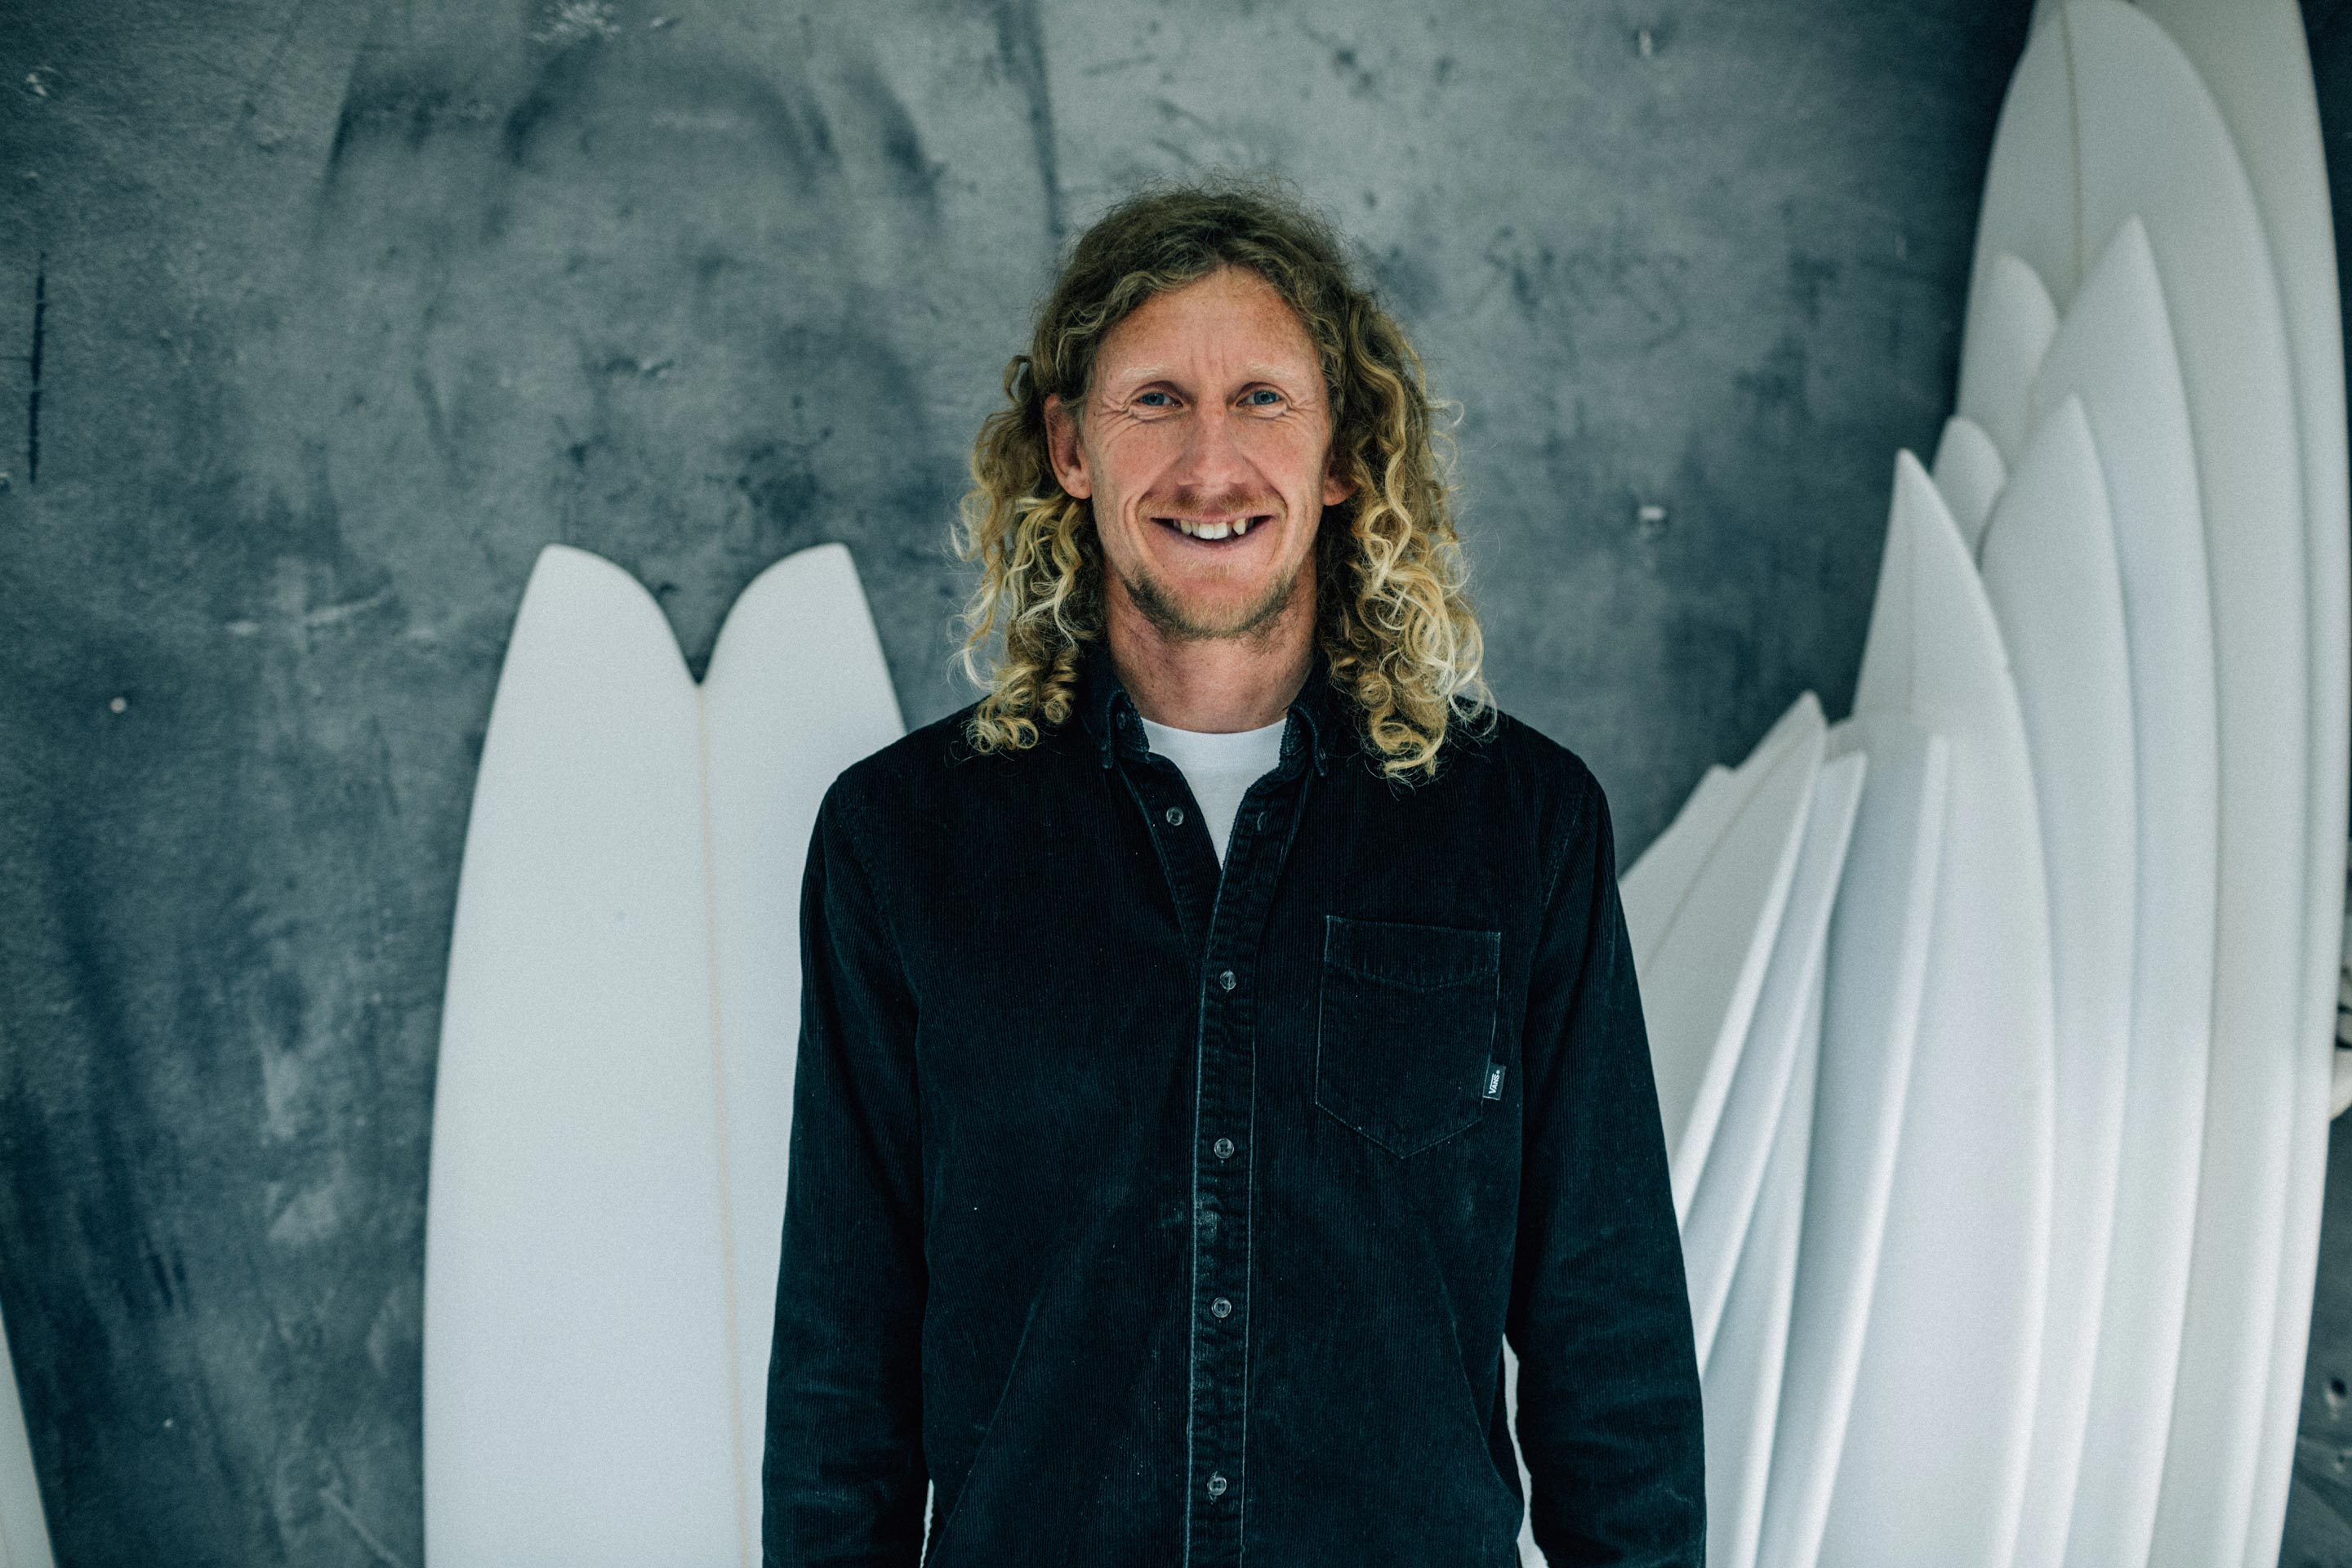 Vans + Finisterre editorial - James Parry in his workshop standing in front of some of his own boards